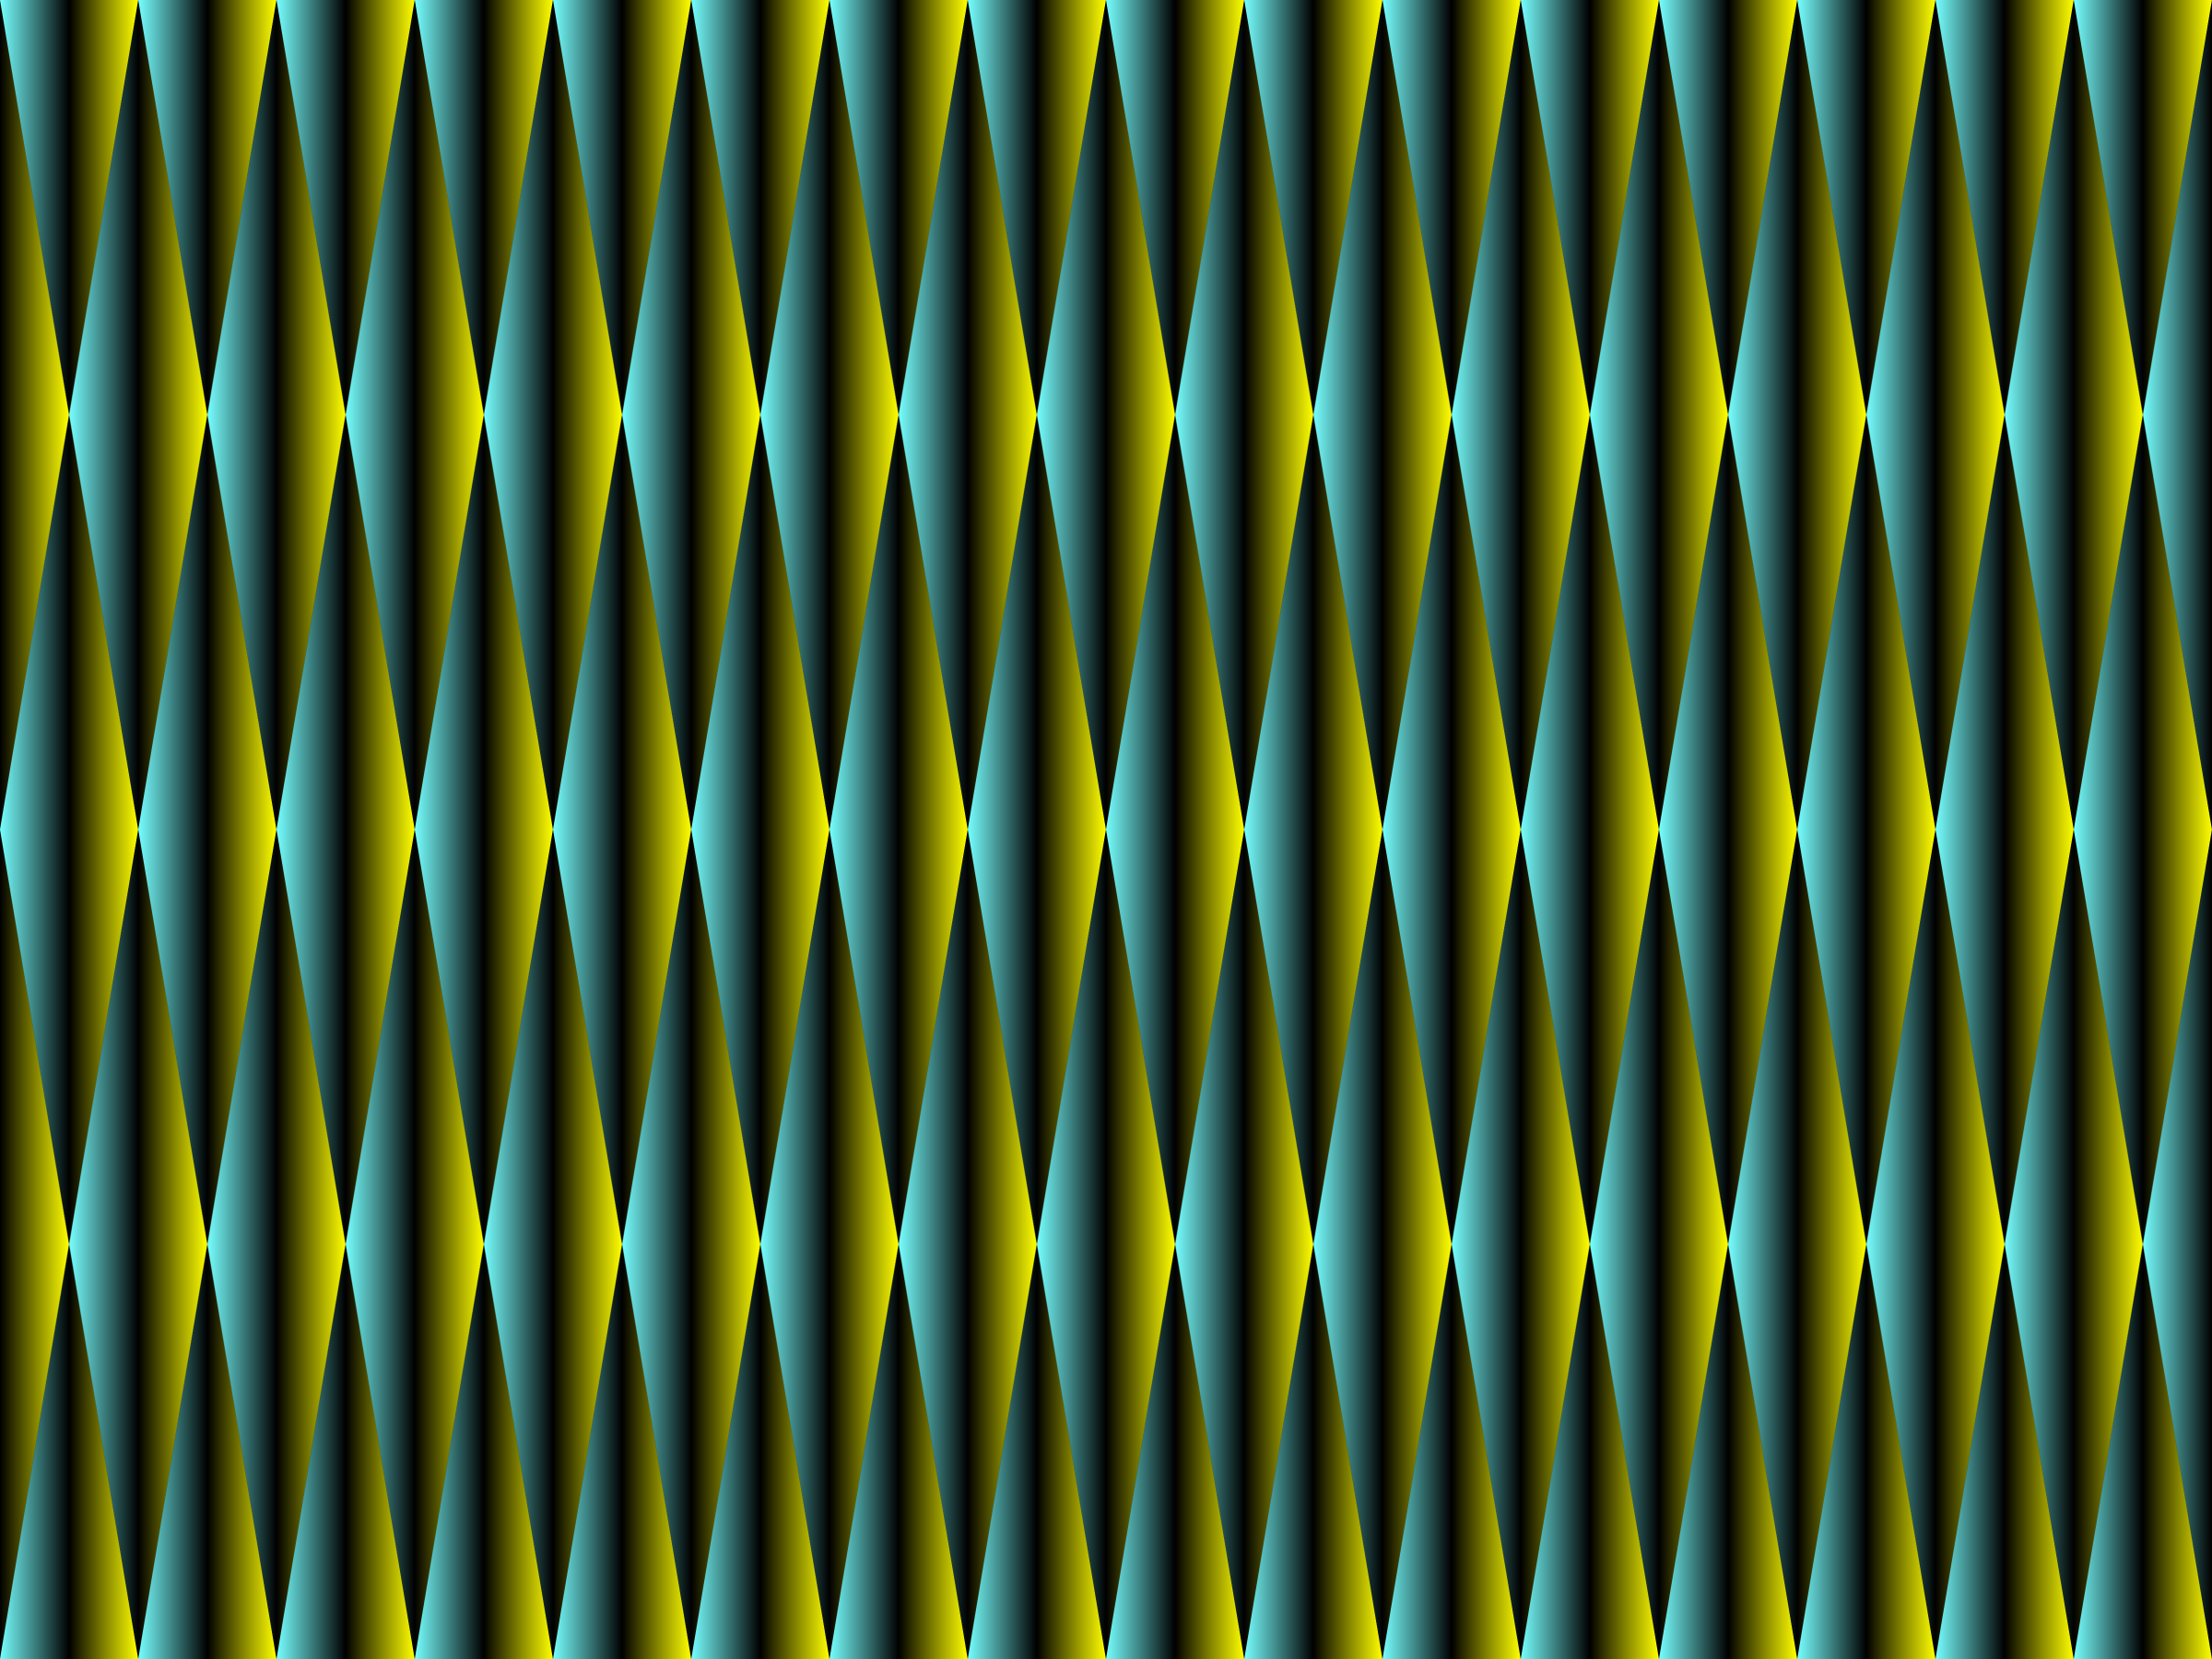 Background pattern 302 (colour 2) by Firkin